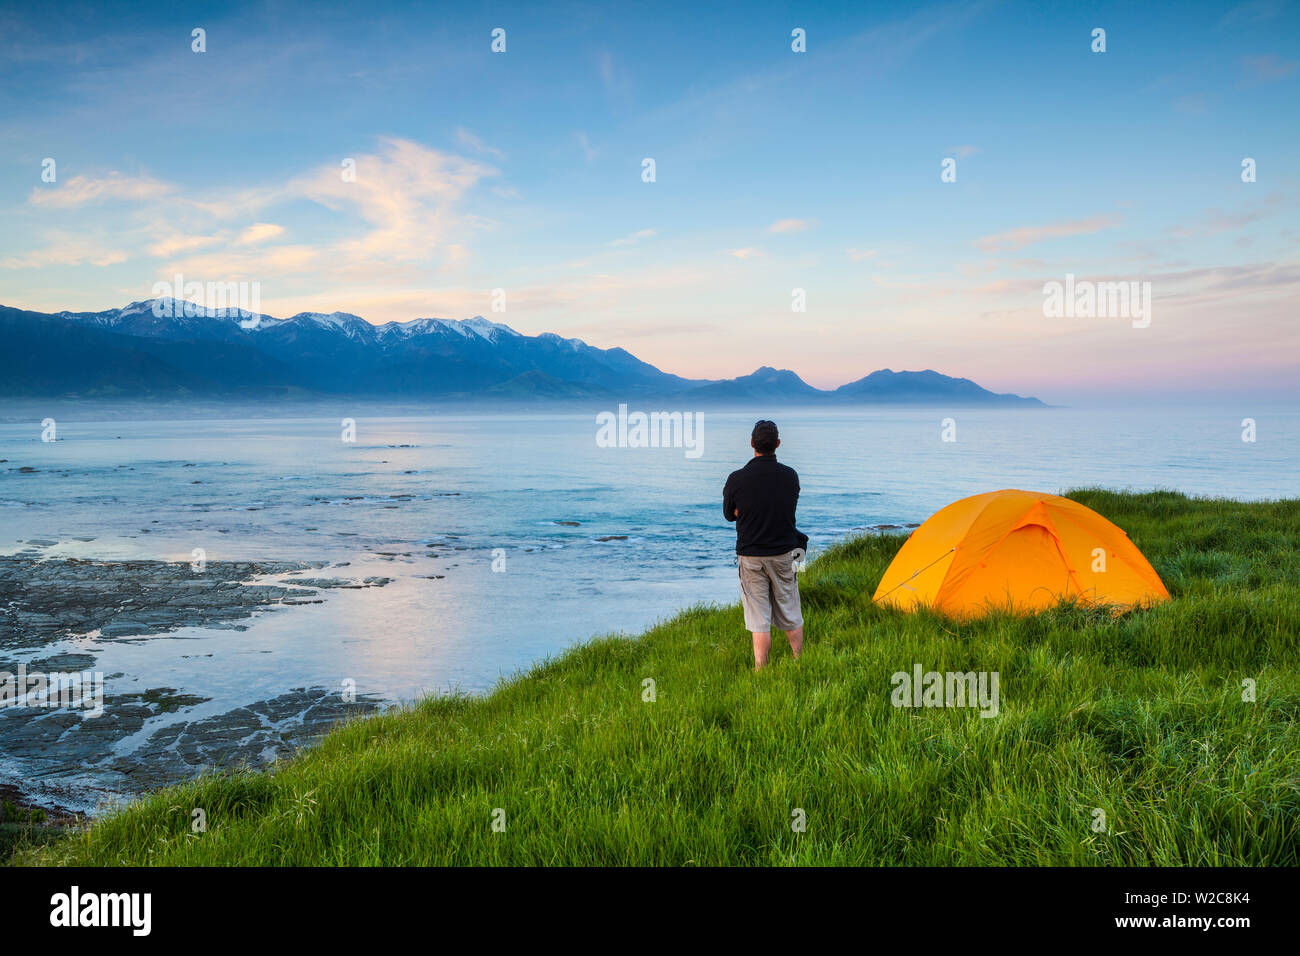 Elevated view over Kaikoura illuminated at sunset, Kaikoura, South Island, New Zealand - Stock Image